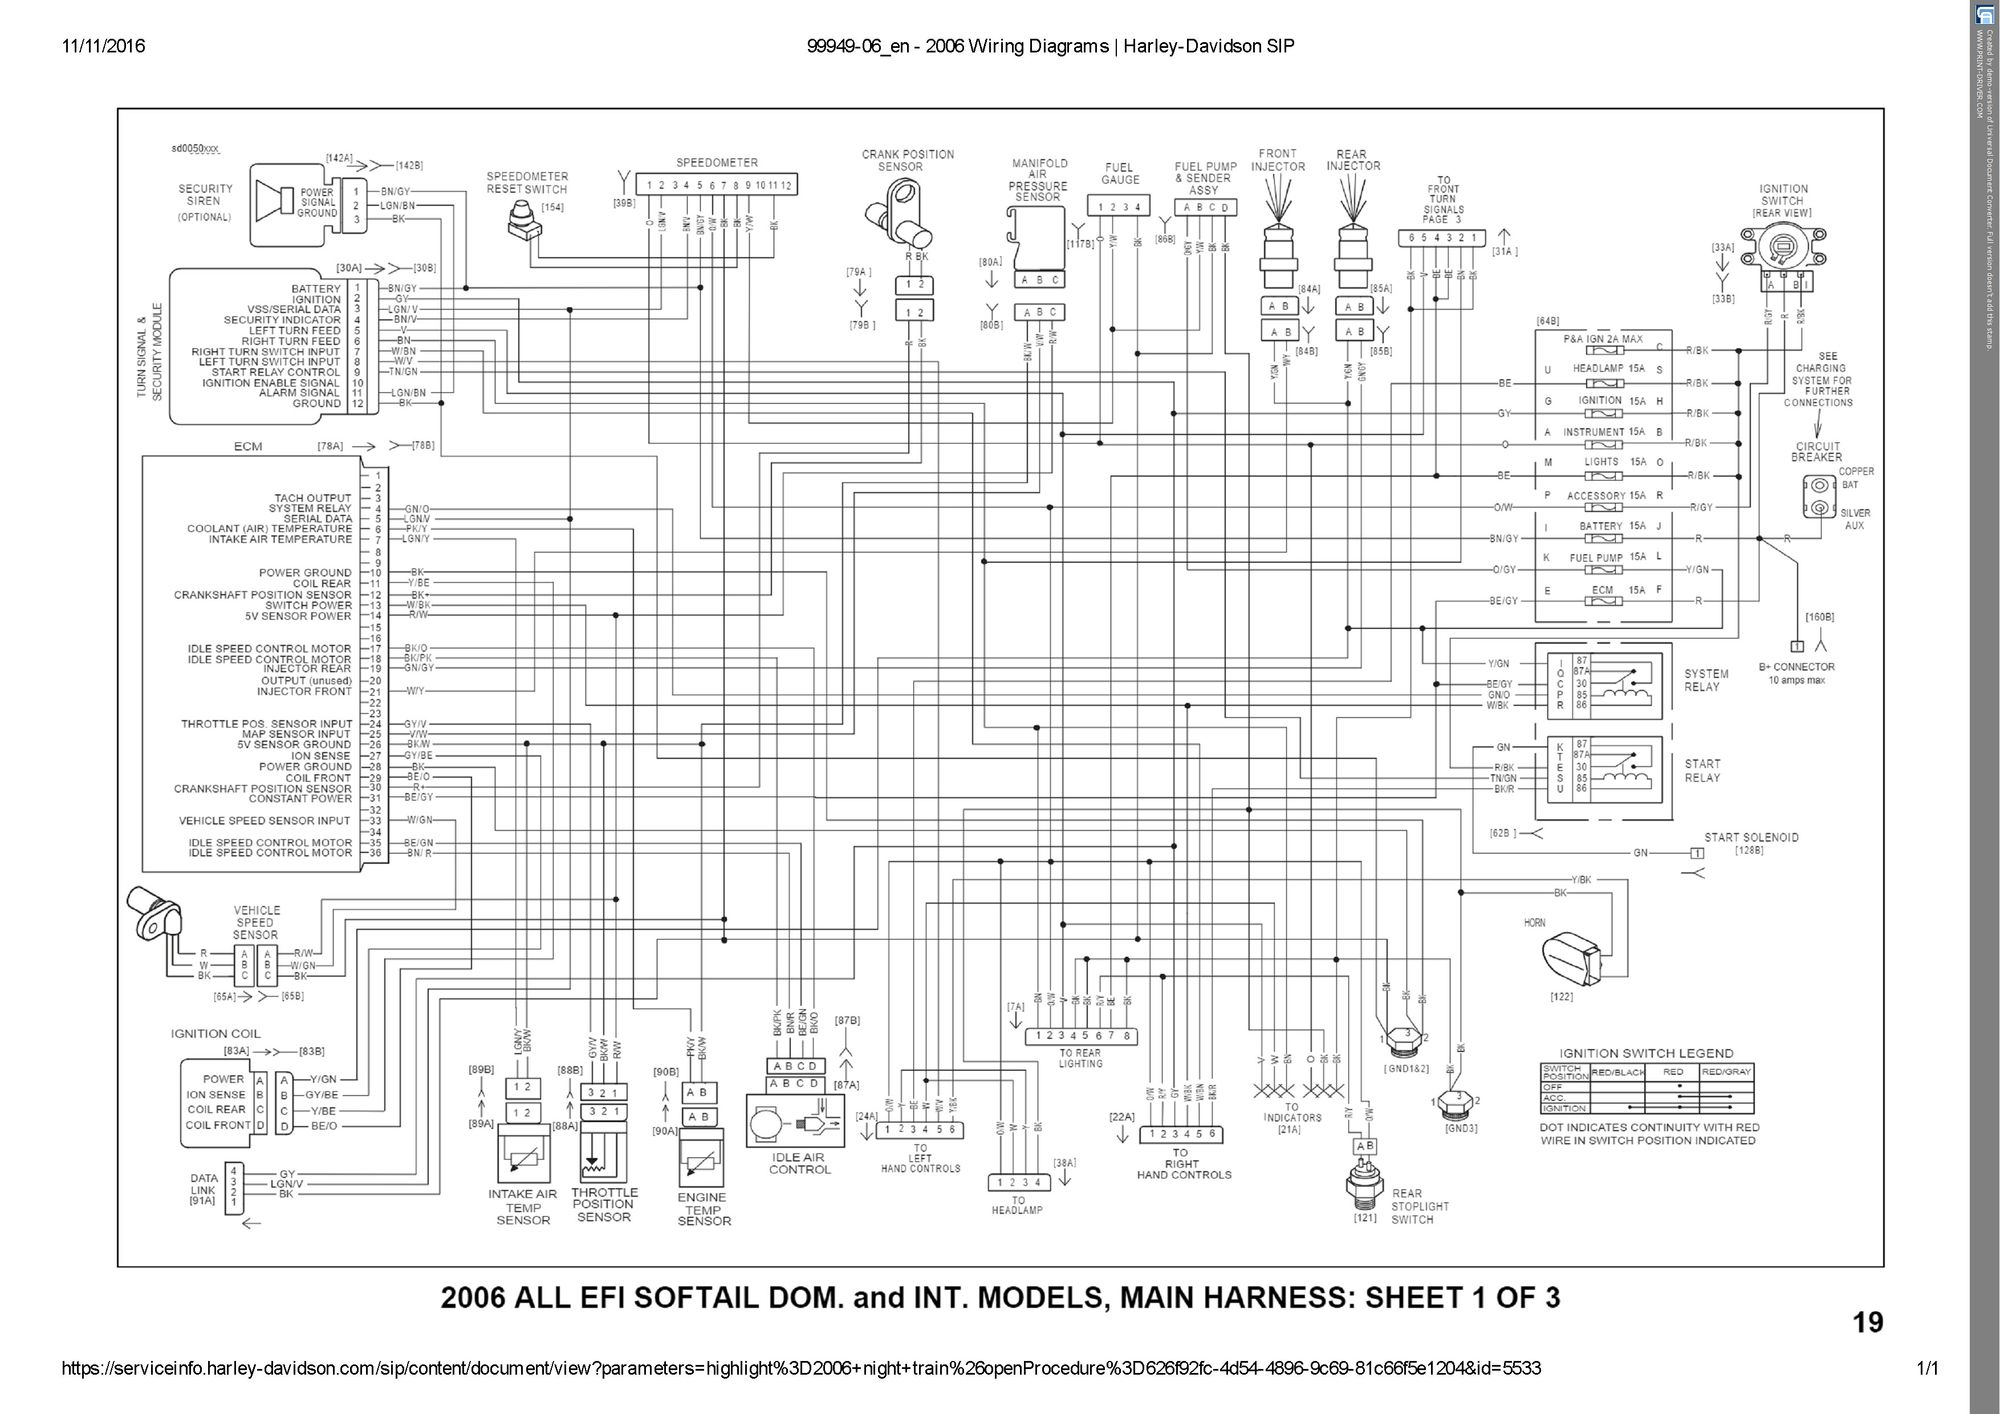 [DIAGRAM_38DE]  GE_0965] Wiring Diagram For 1997 Softail Wiring Diagram | 1997 Harley Davidson Softail Wiring Diagram |  | Anth Proe Tzici Ungo Awni Eopsy Peted Oidei Vira Mohammedshrine Librar  Wiring 101